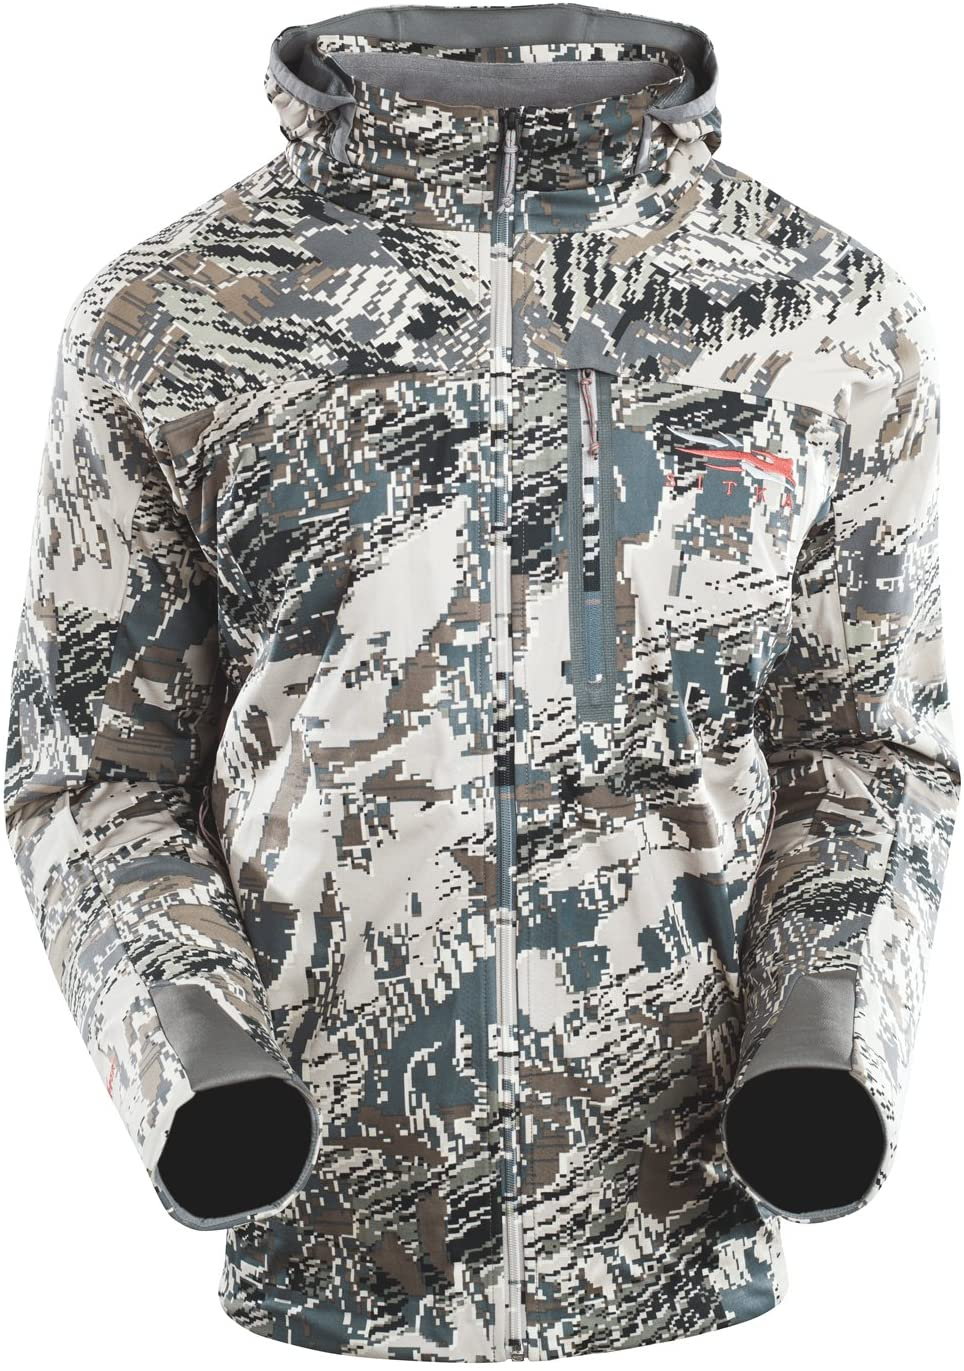 SITKA Gear Timberline Jacket Optifade Open Country XX Large